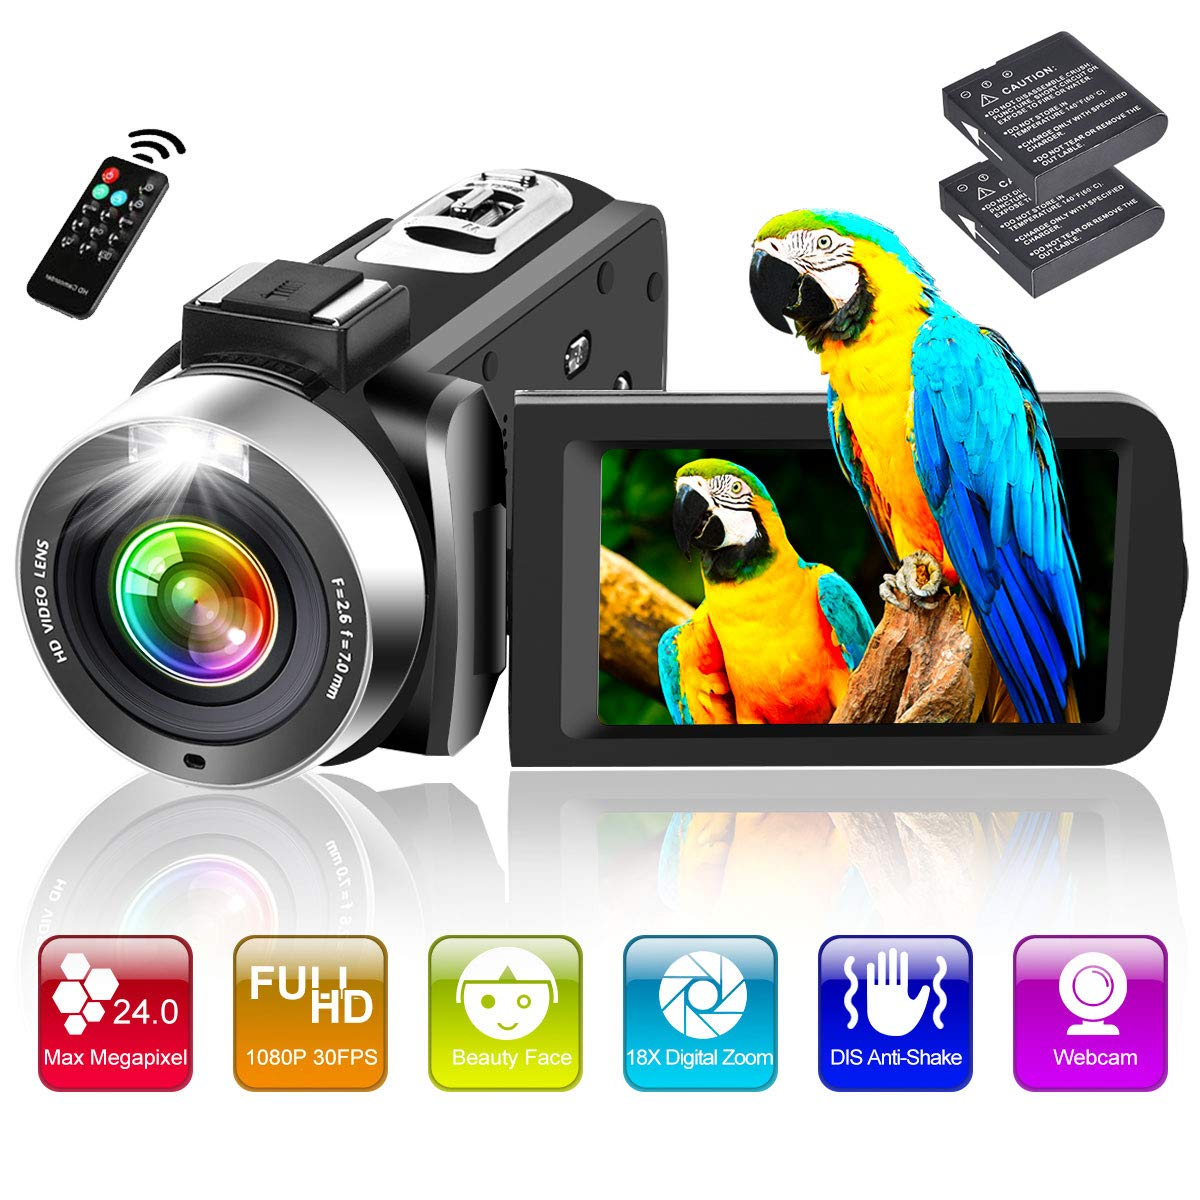 Video Camera Camcorder Full HD 1080P 30FPS 24.0MP 18X Digital Zoom Vlogging Camera for YouTube with 3 Inch 270 Degree Rotation Screen and 2 Batteries